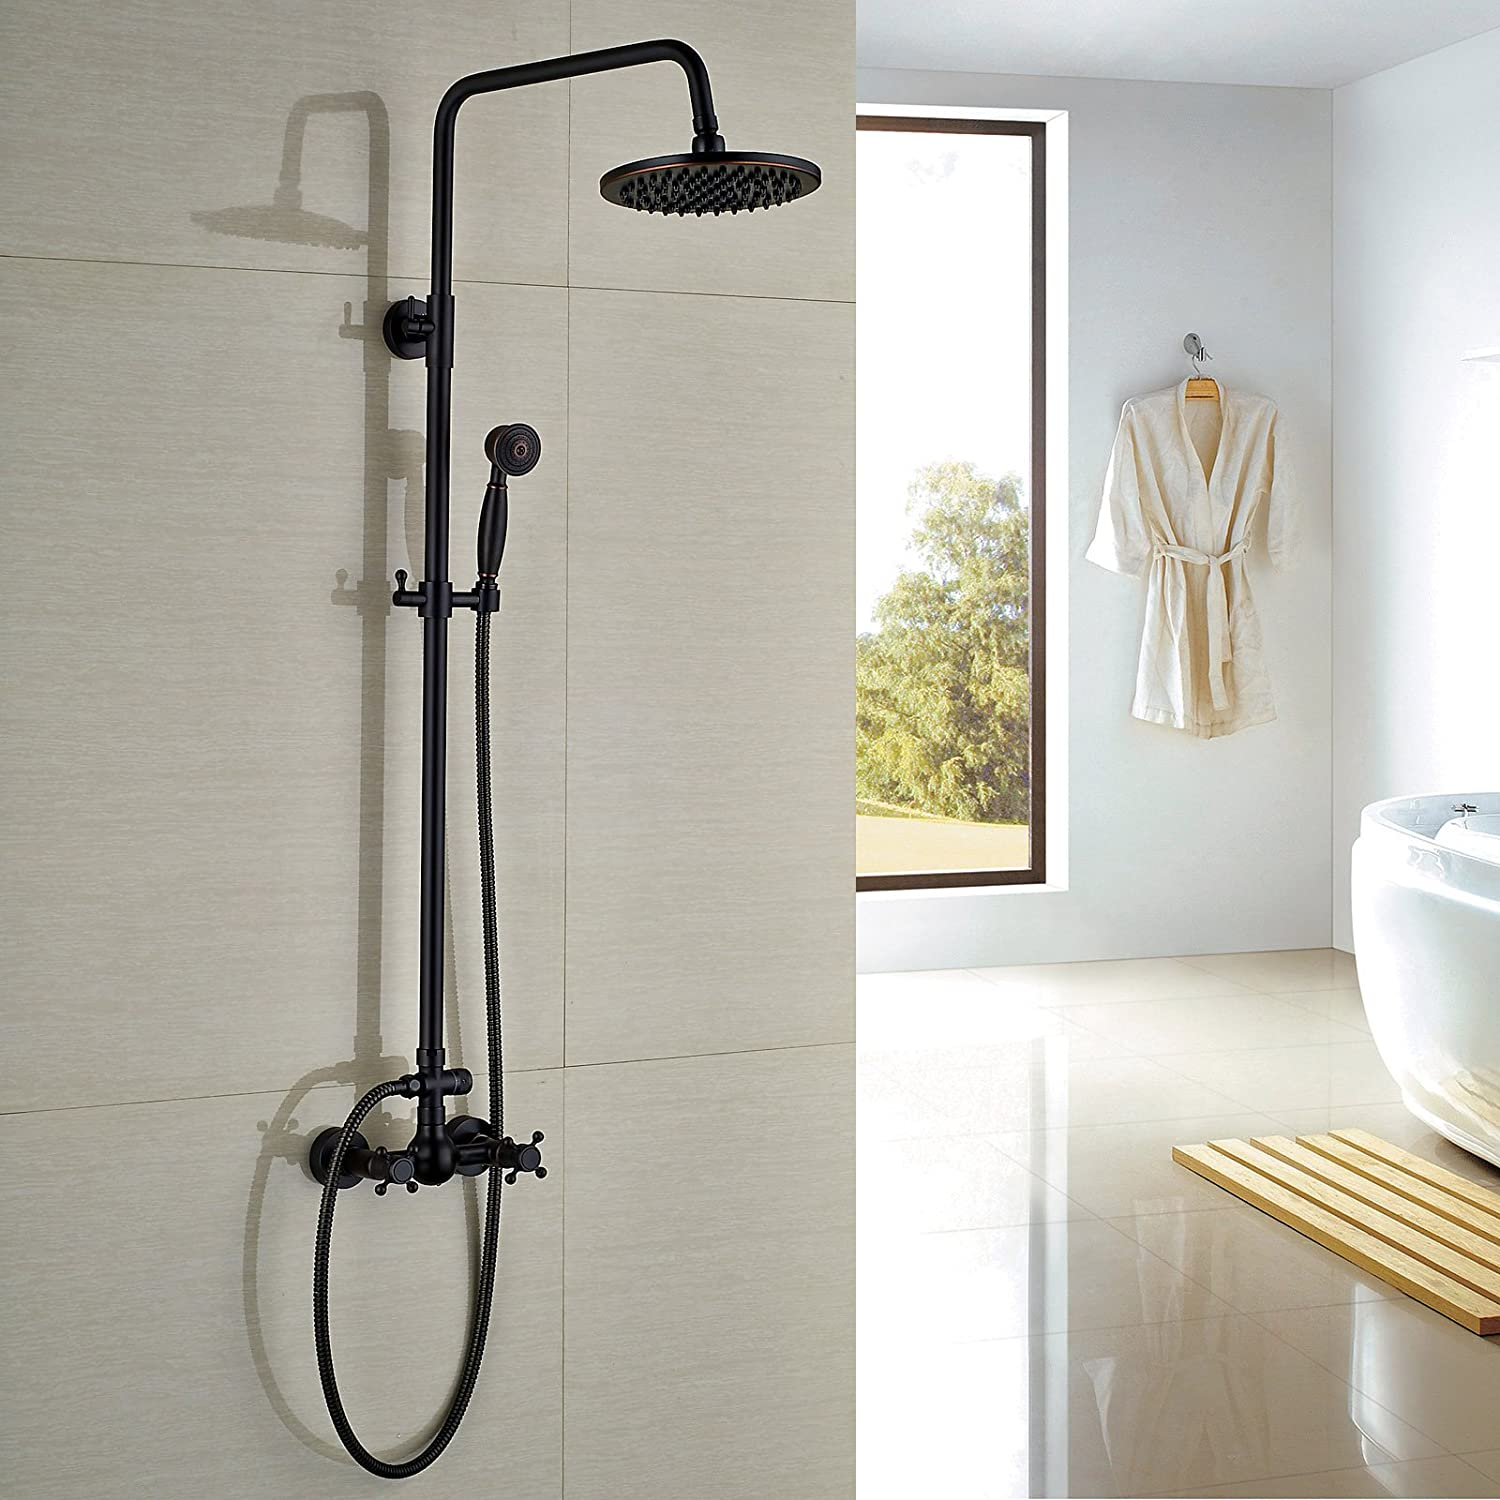 rozin bathroom shower faucet set 8 rain shower head hand spray oil rubbed bronze amazoncom